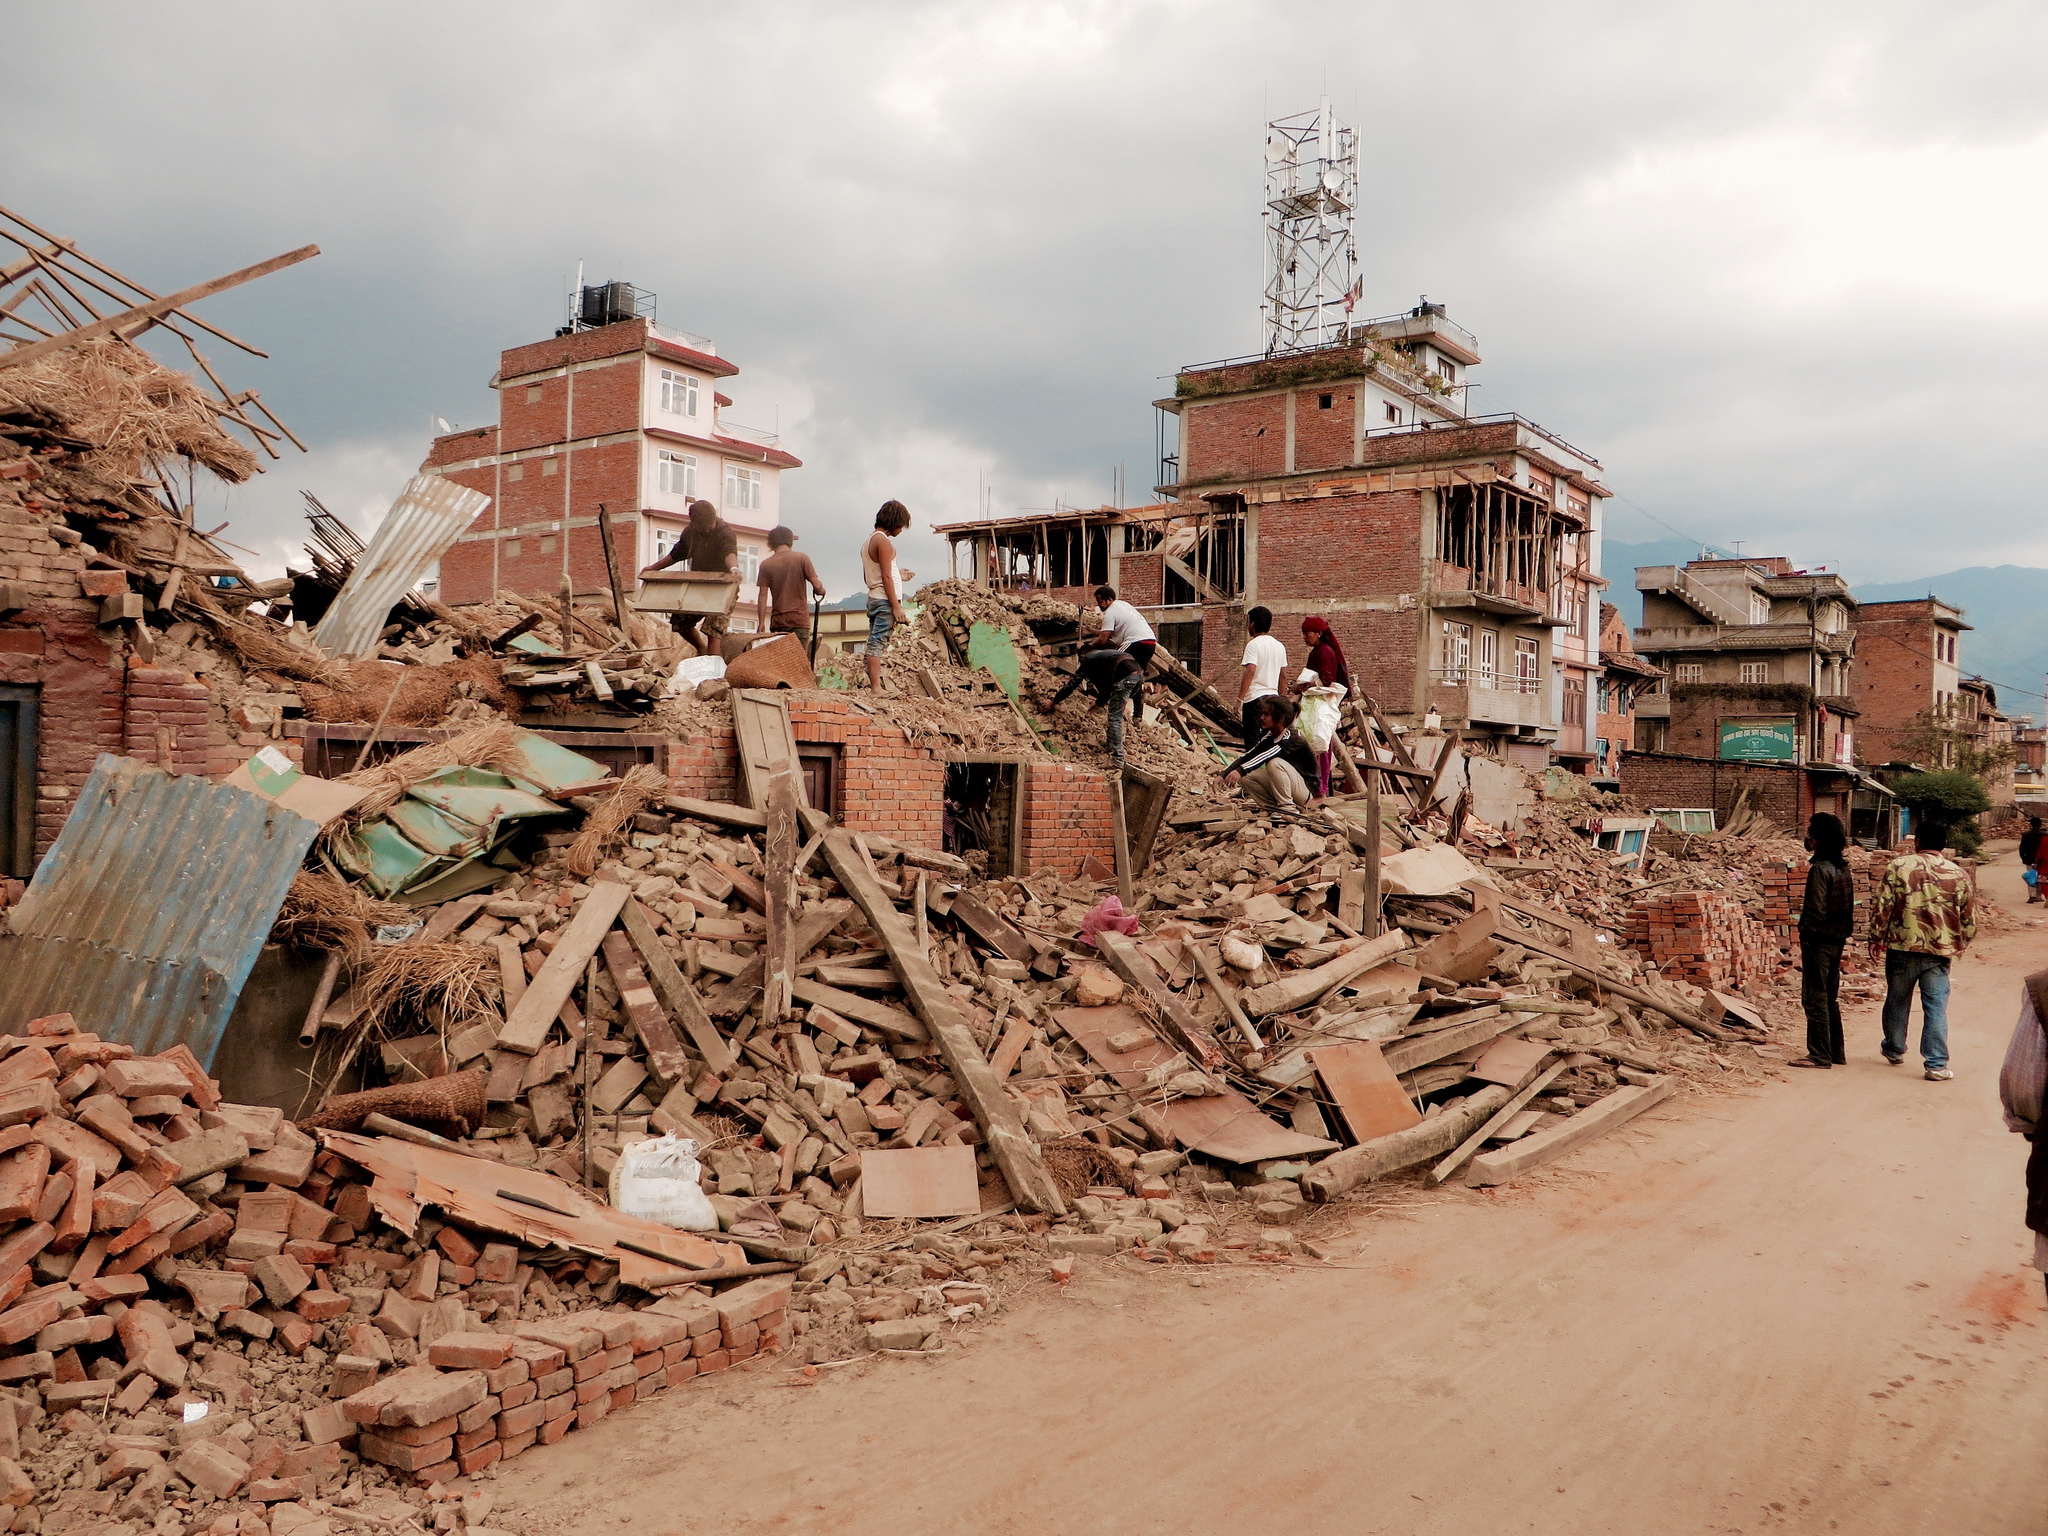 Rescue efforts are underway in Kathmandu where many people have been killed or injured. Photo by Gabriel Jens